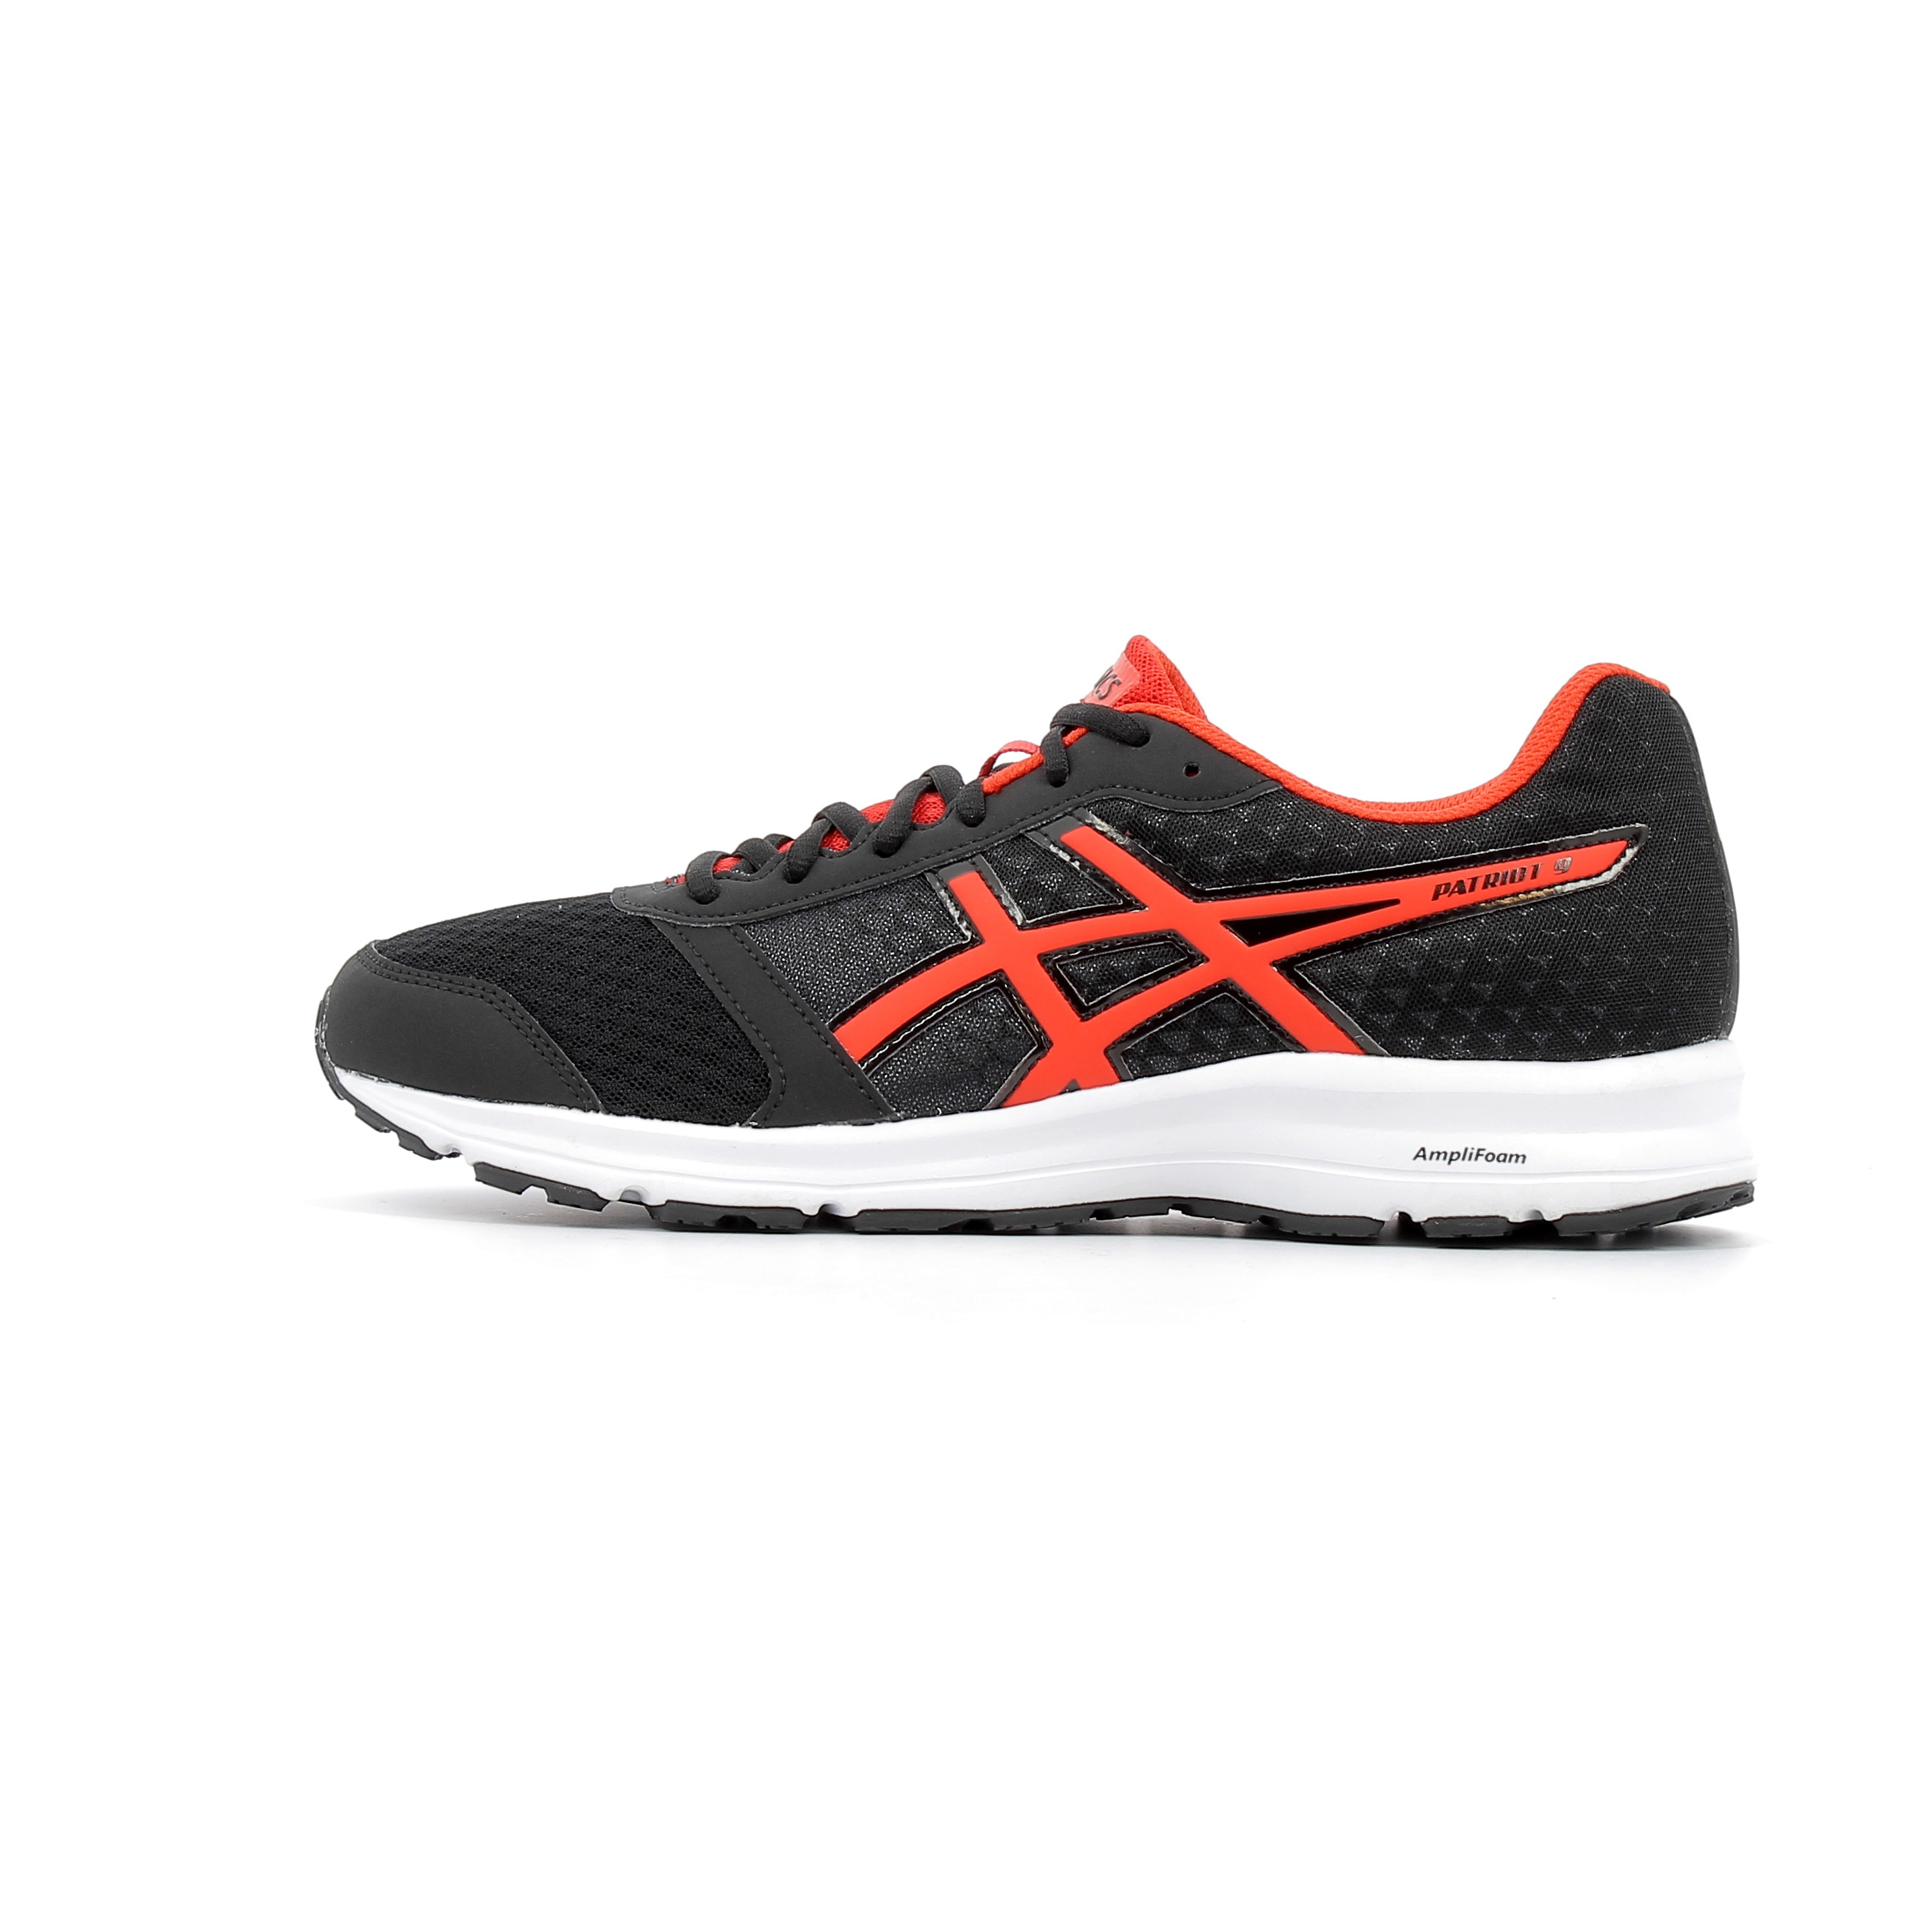 Chaussures de running Asics Patriot 9